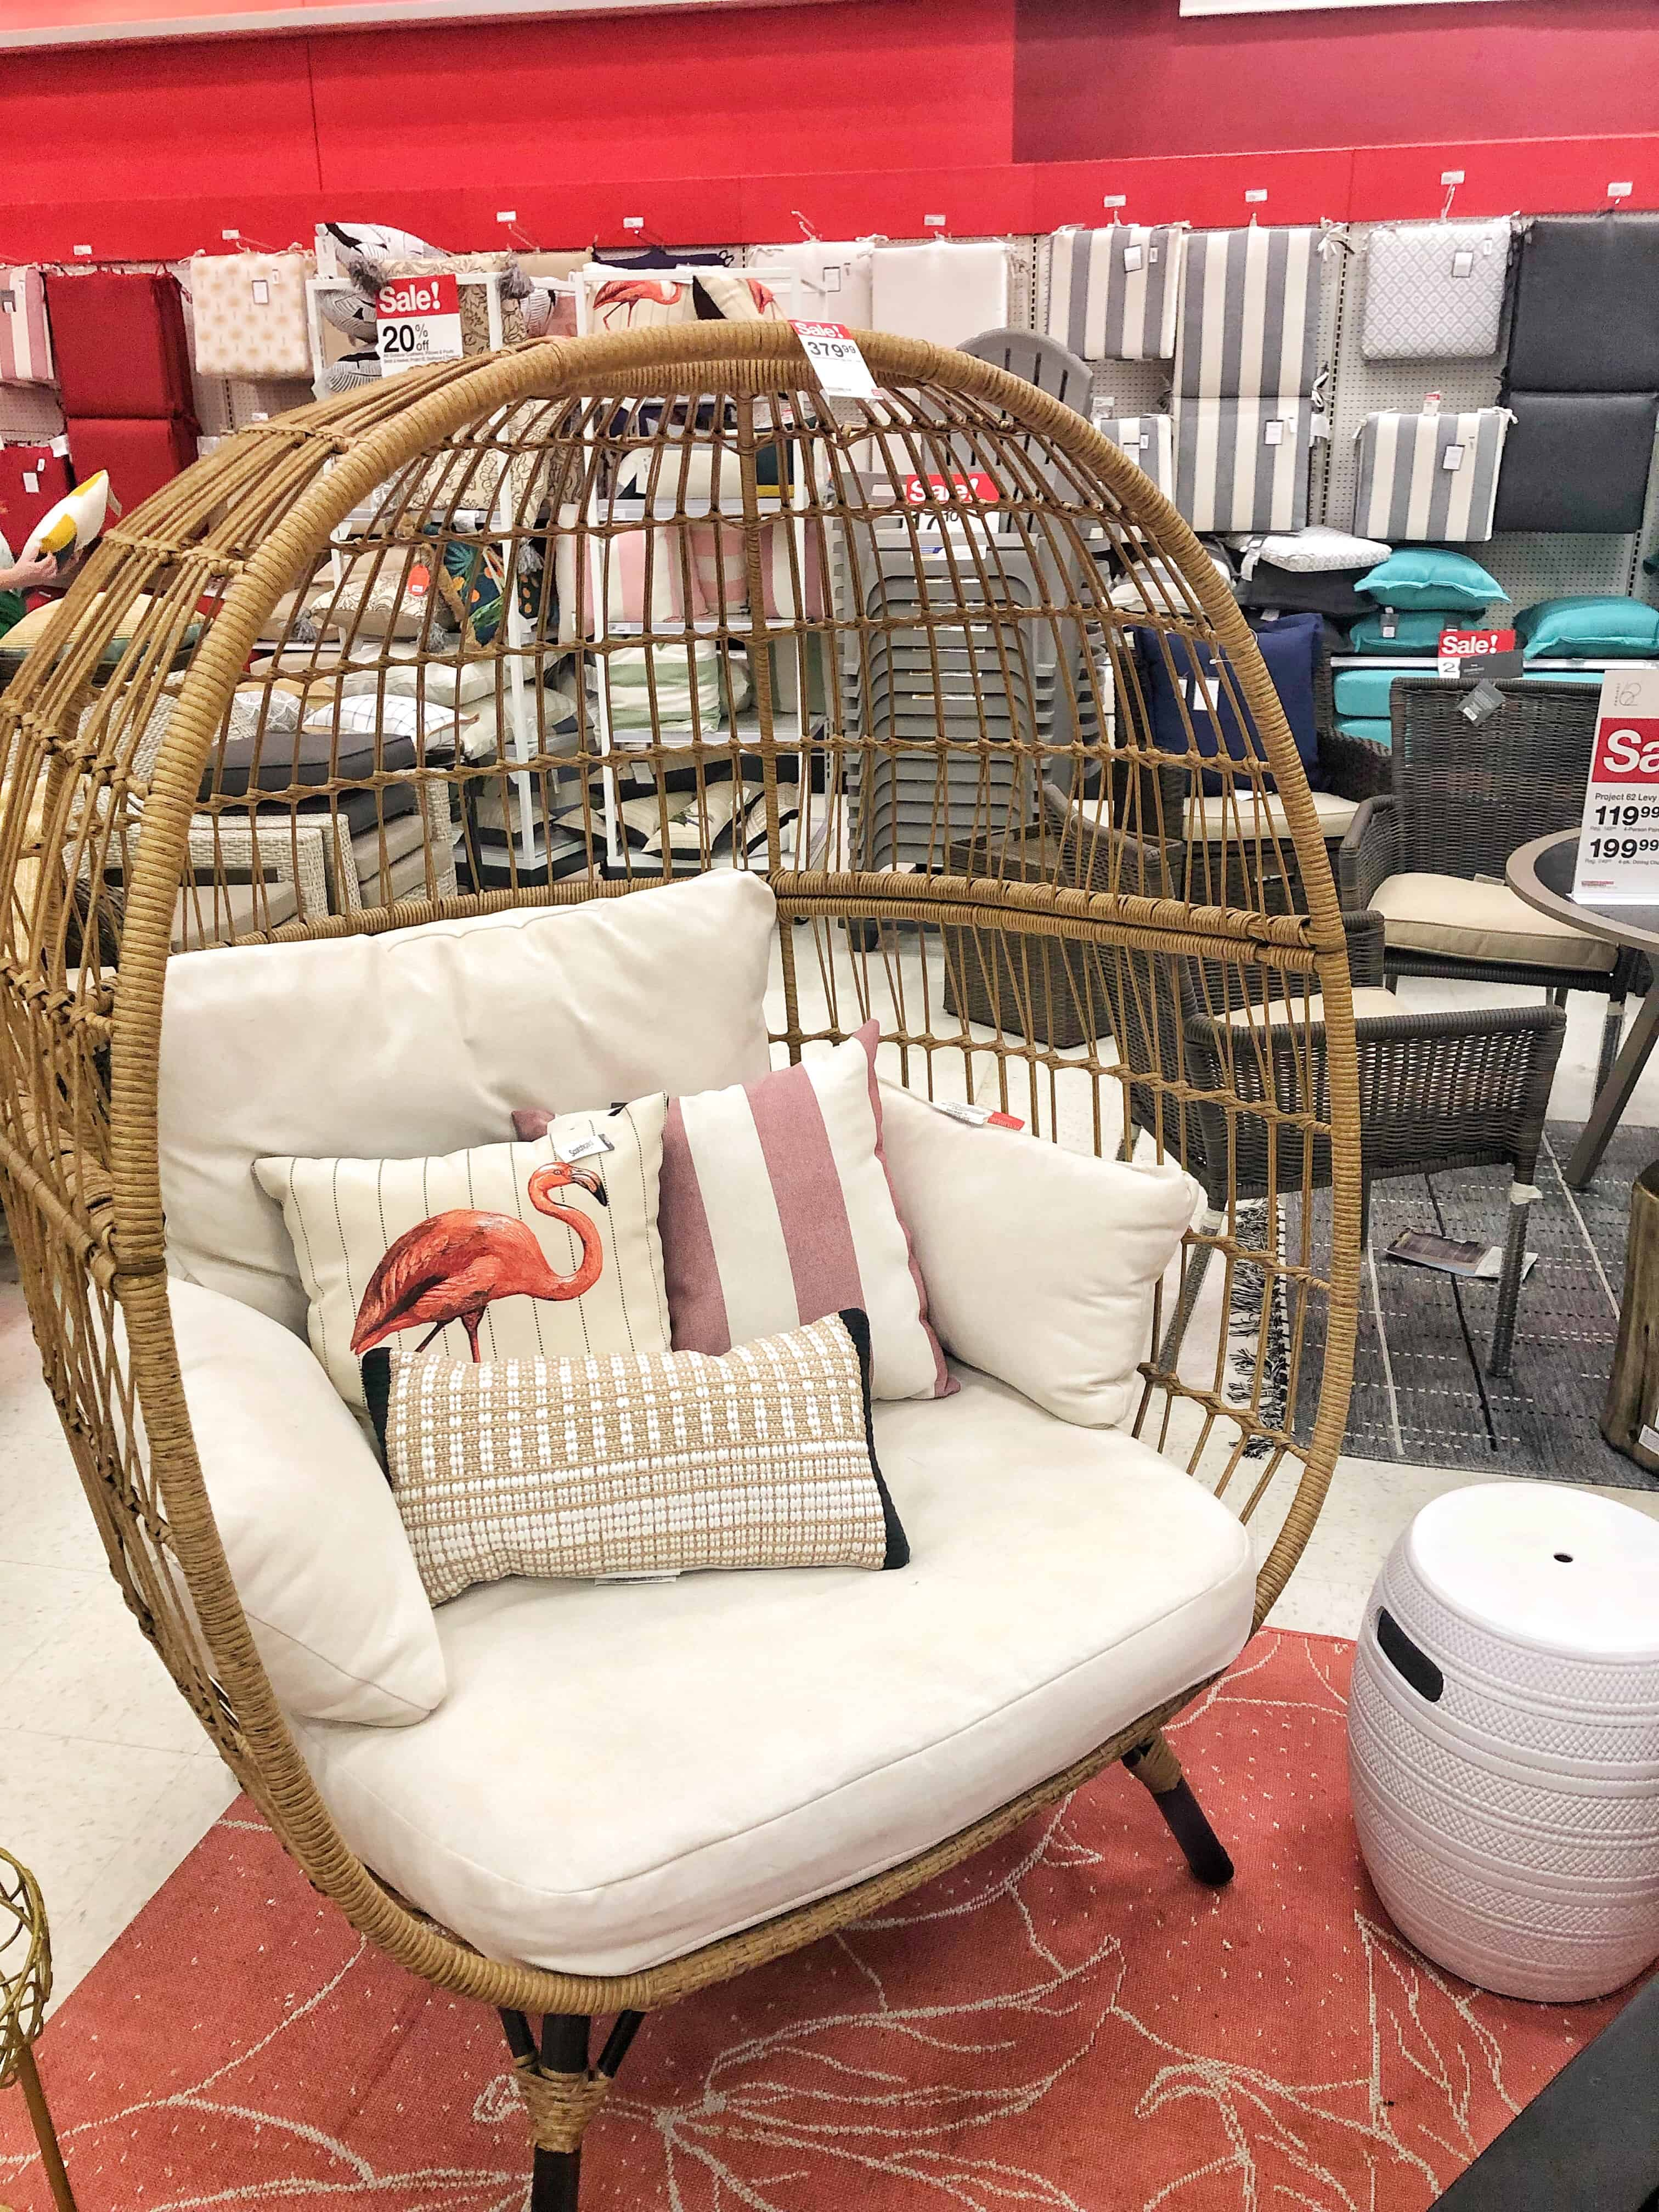 Miraculous Sprucing Up Your Summer Patio With Target 5 23 2019 Unemploymentrelief Wooden Chair Designs For Living Room Unemploymentrelieforg